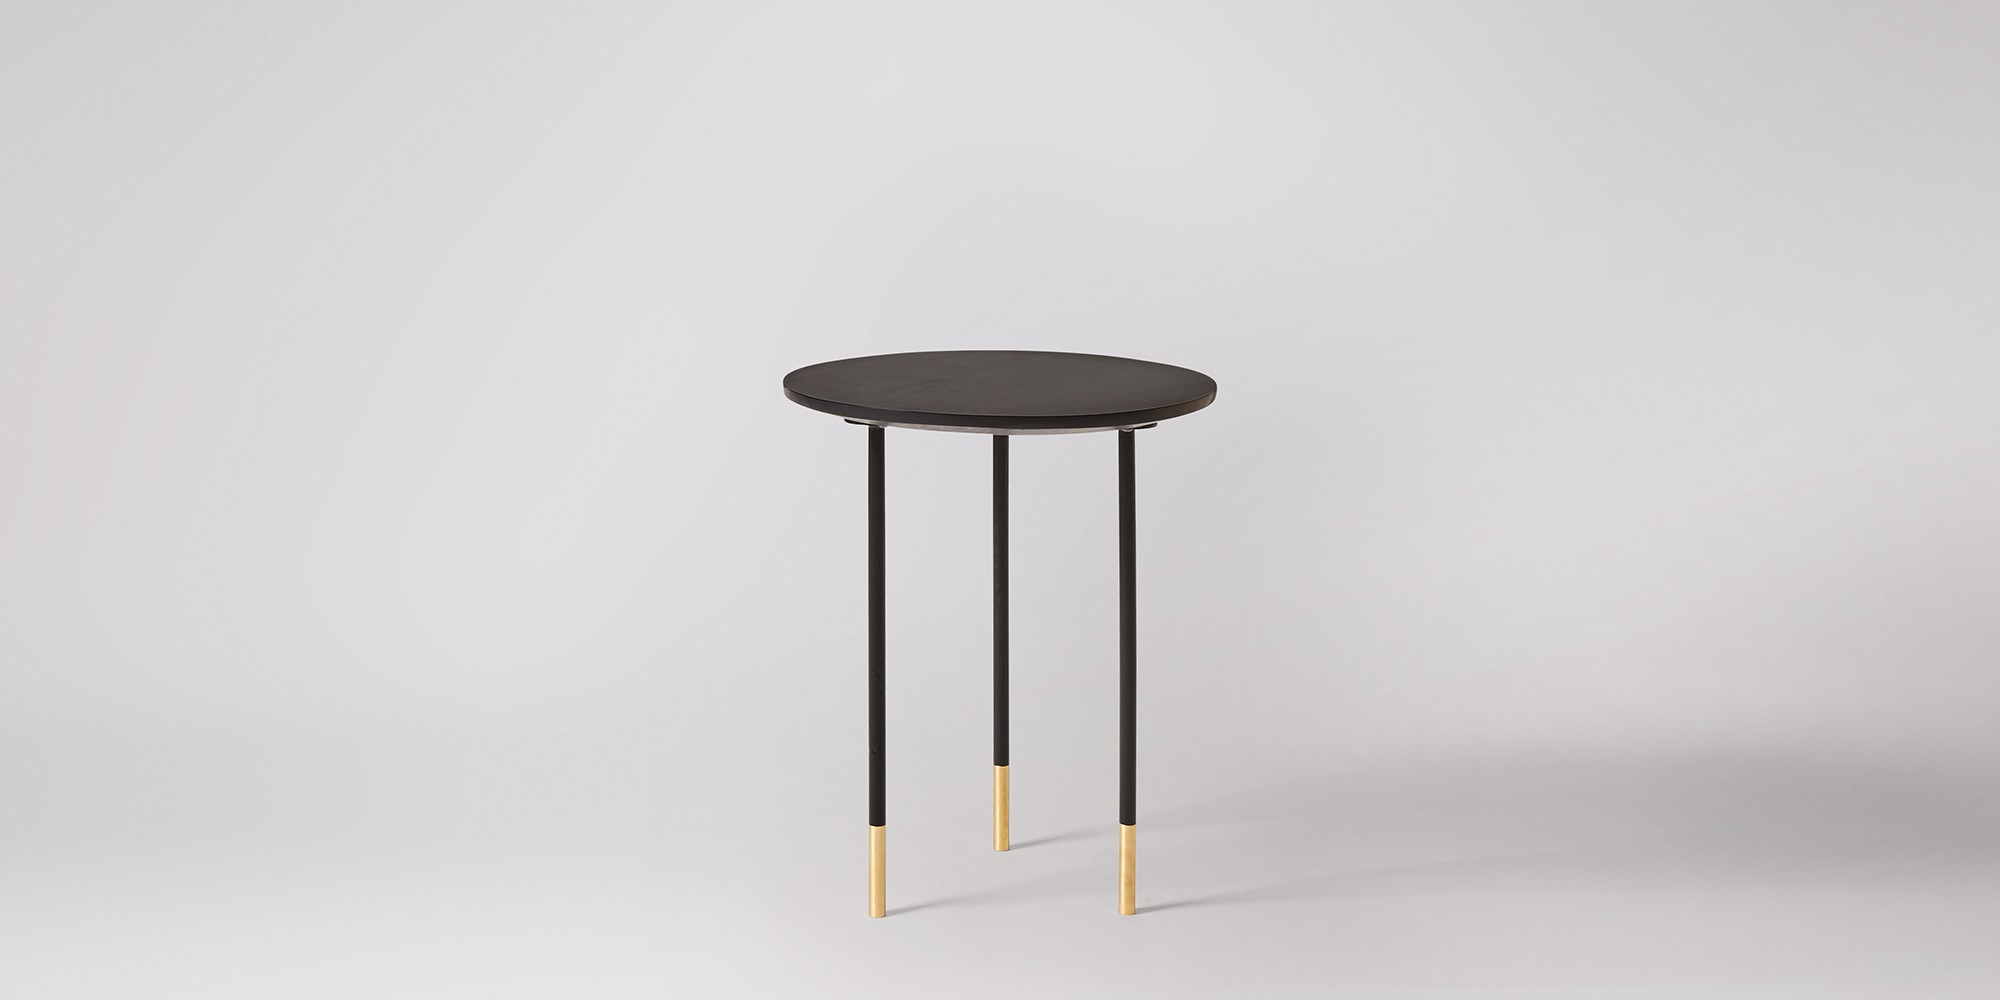 galway charcoal brass side table swoon productpage carousel desktop linon accent white small adjustable legs chest drawers for living room bar stools inch square tablecloth